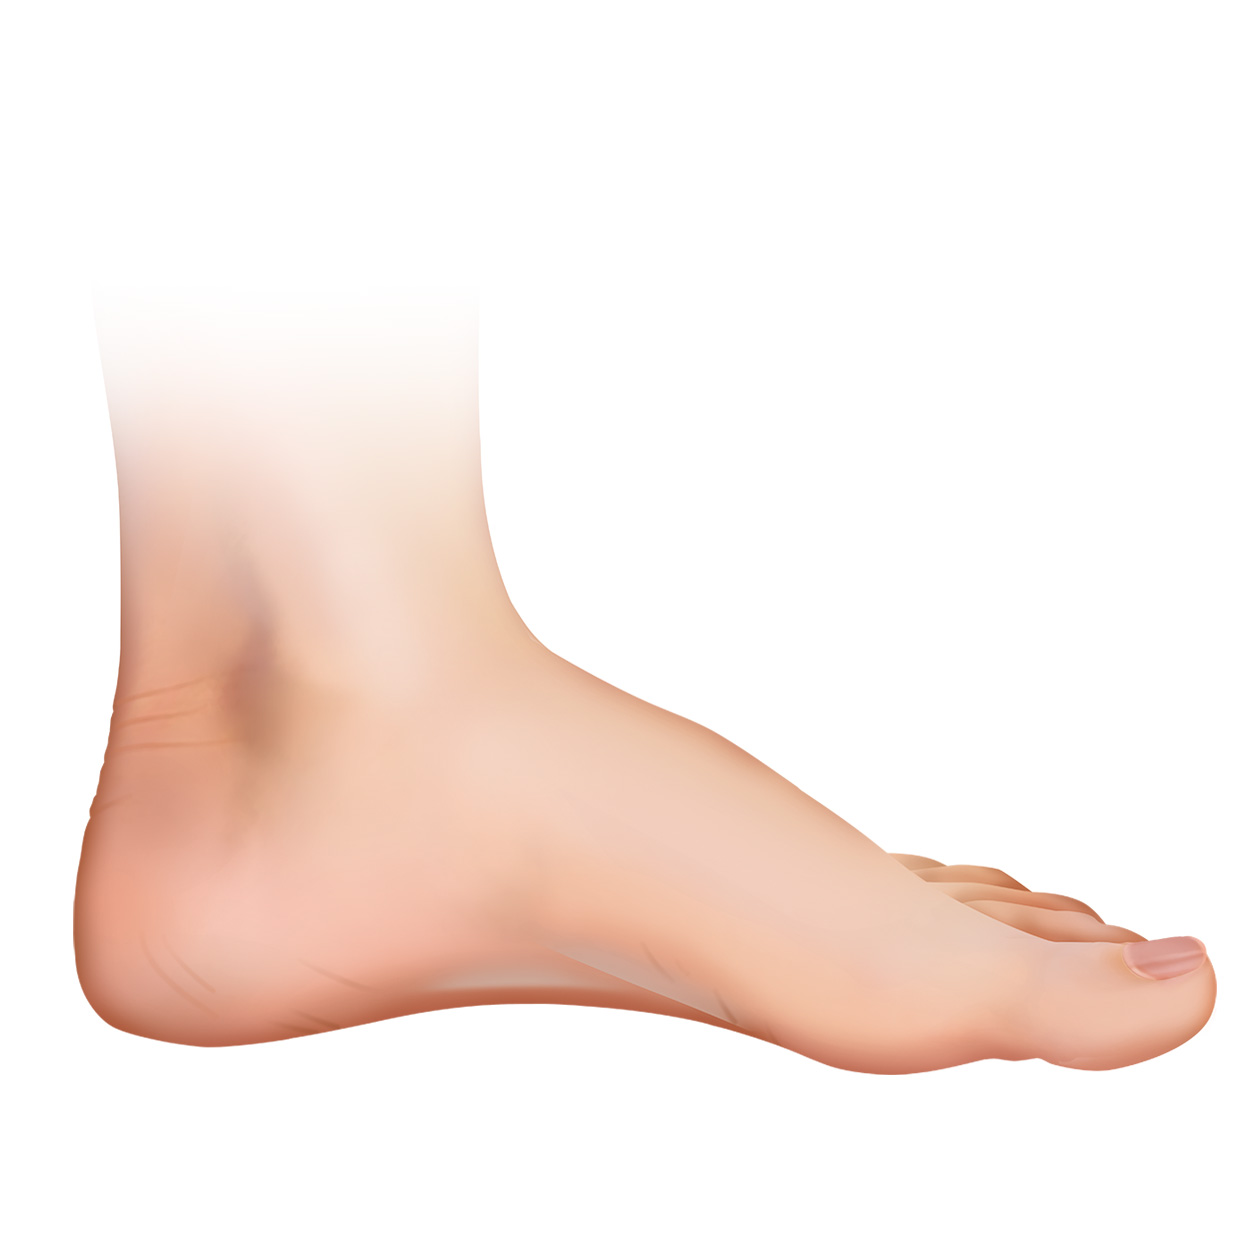 foot lateral.jpg